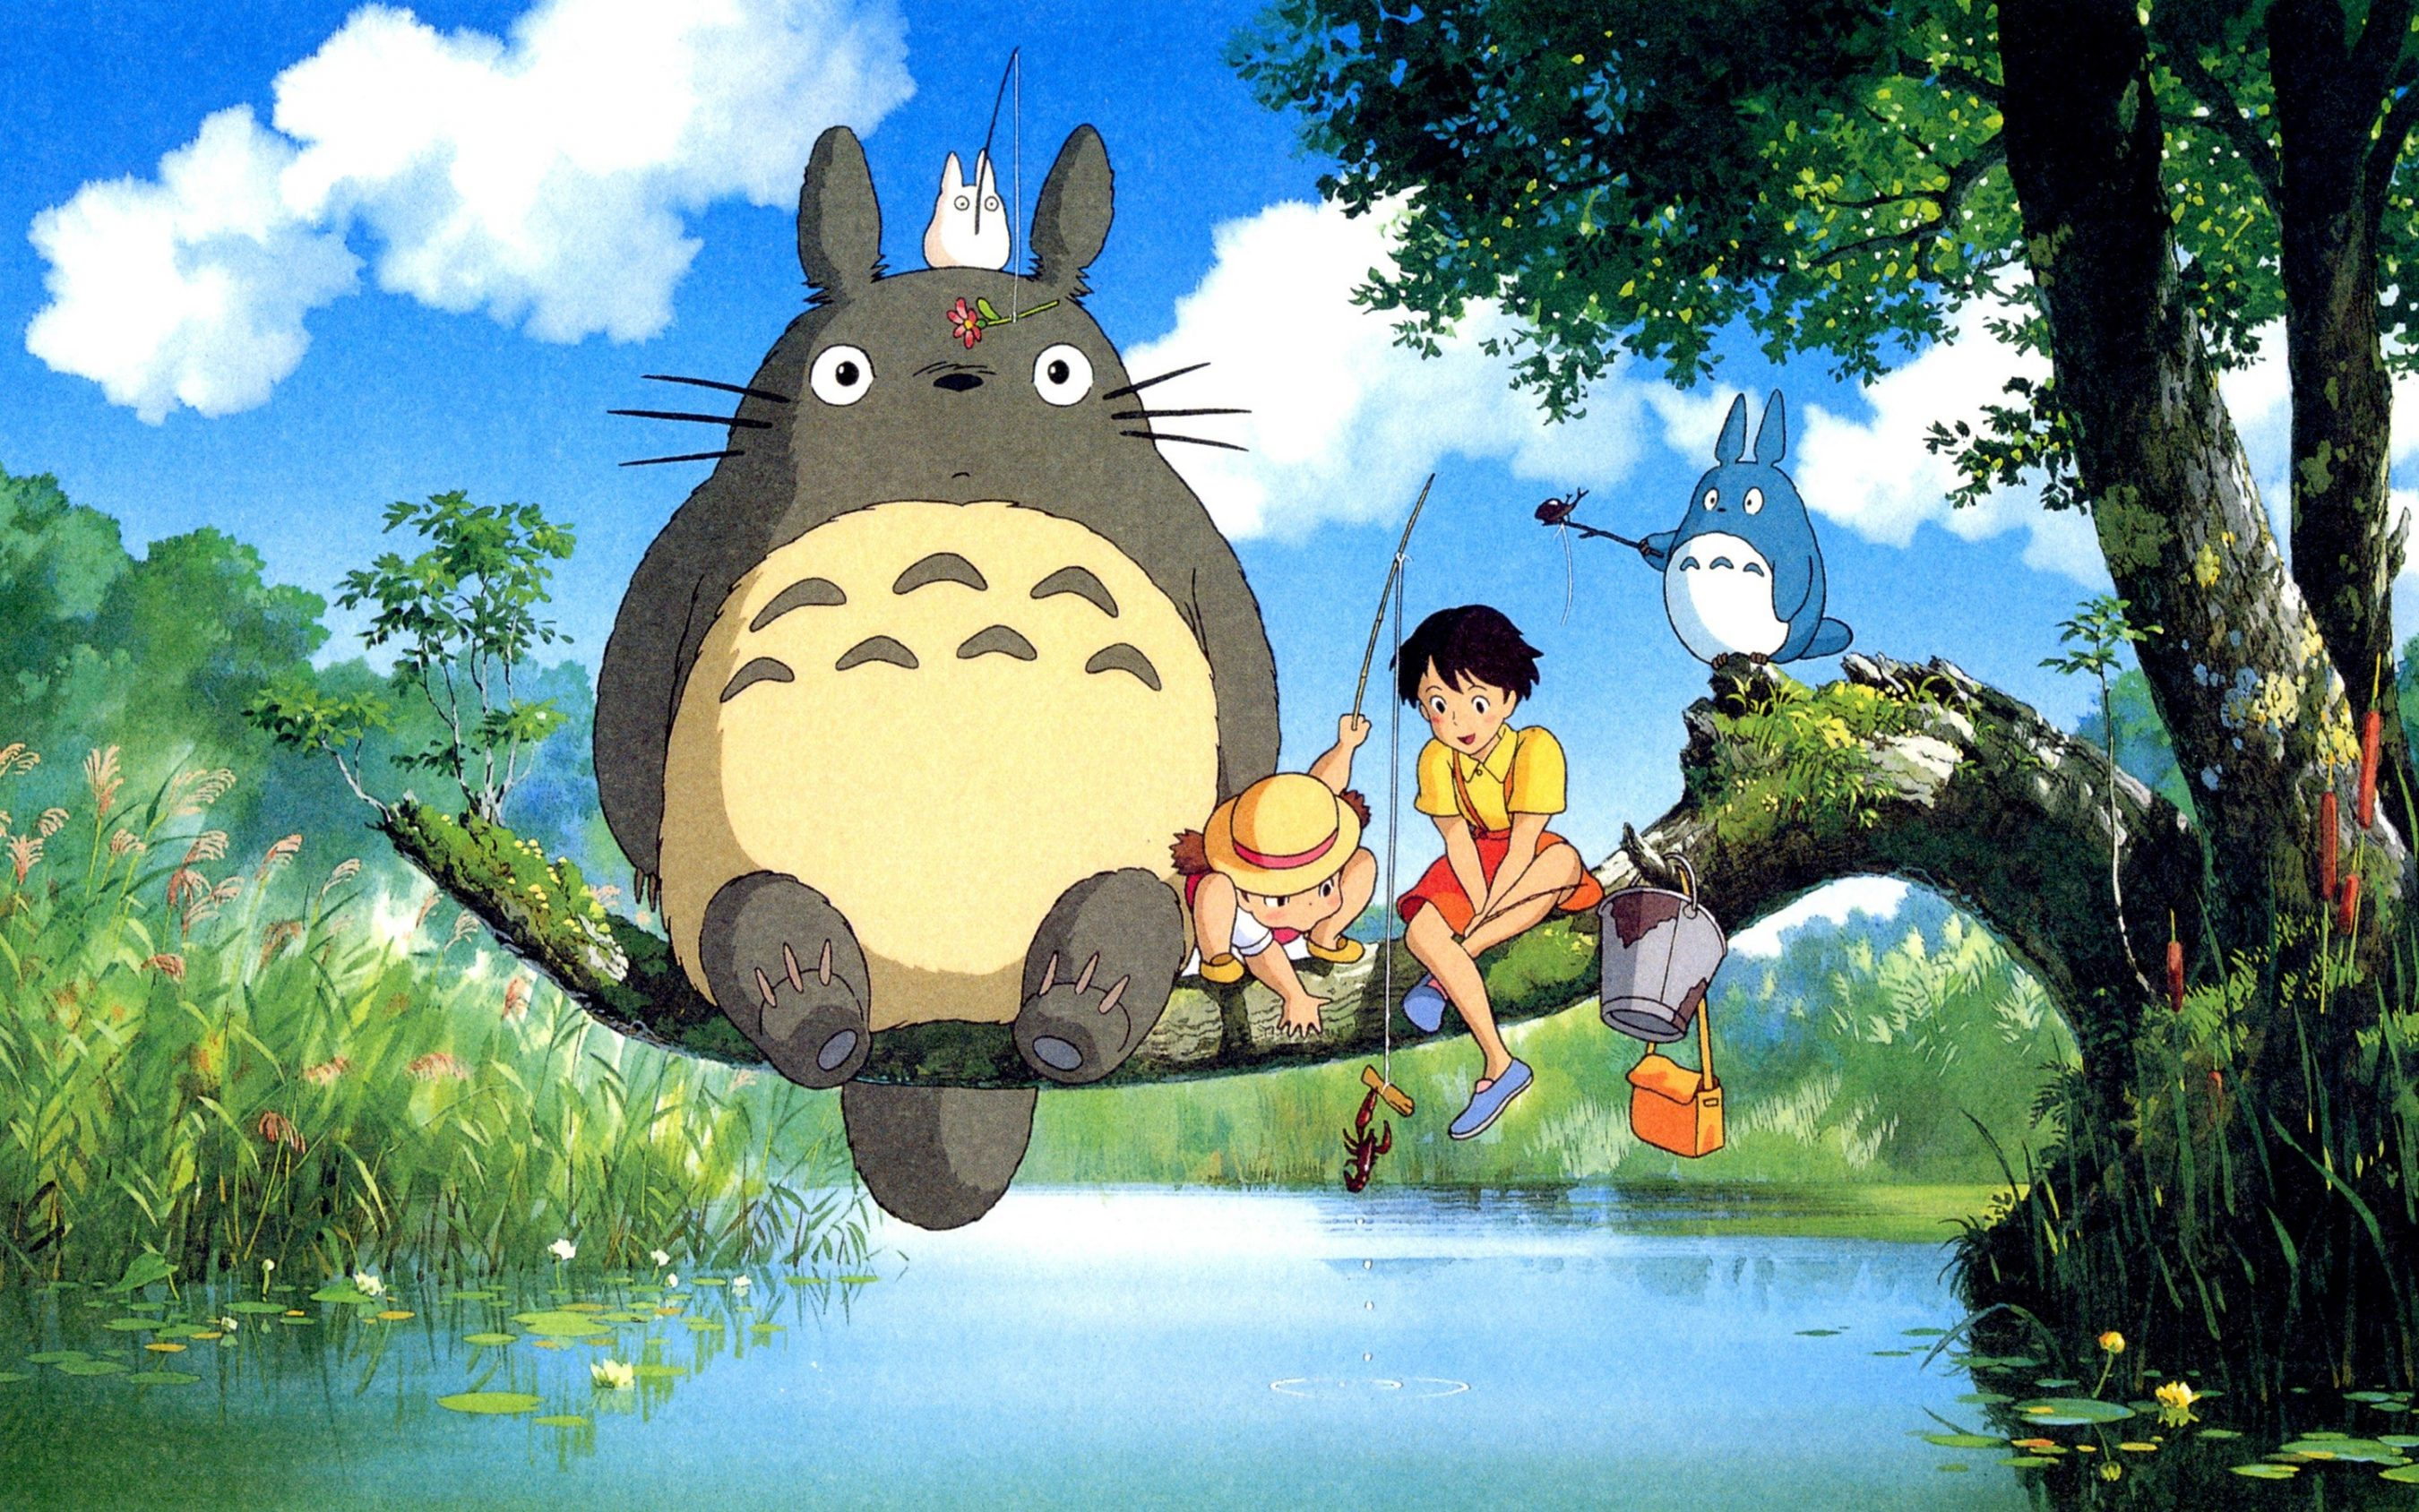 https://beat.com.au/wp-content/uploads/2019/06/Totoro-e1573182607377.jpg